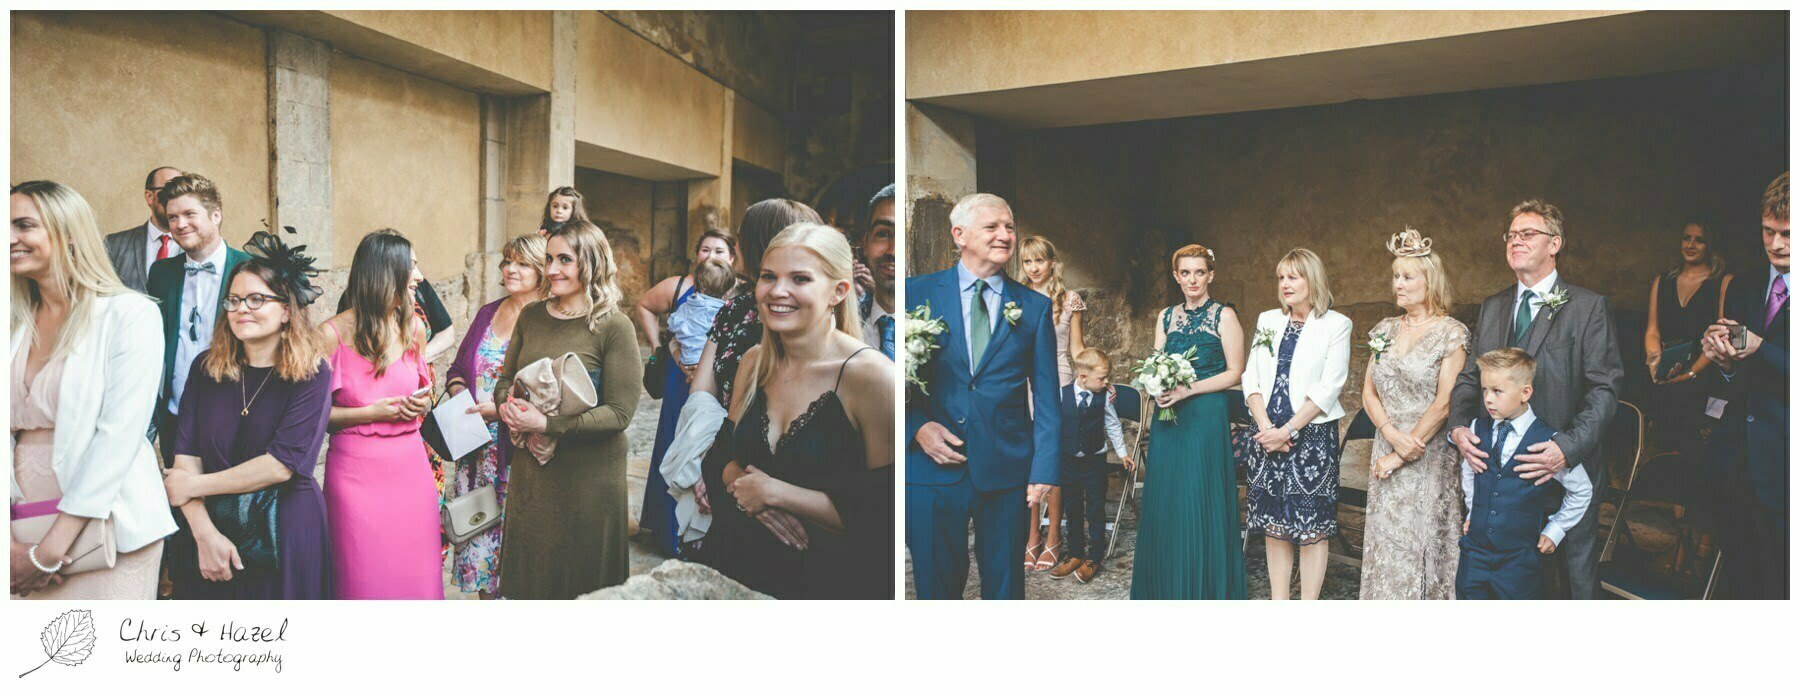 Ceremony Wedding Guests at Roman Baths Pump Rooms, The Roman Baths Wedding Photography, Roman Baths Wedding Photographer, Wedding in Bath, Bath Wedding Day, documentary wedding photography, Chris and Hazel Wedding Photography Bath, Andy Frost Sian Upson